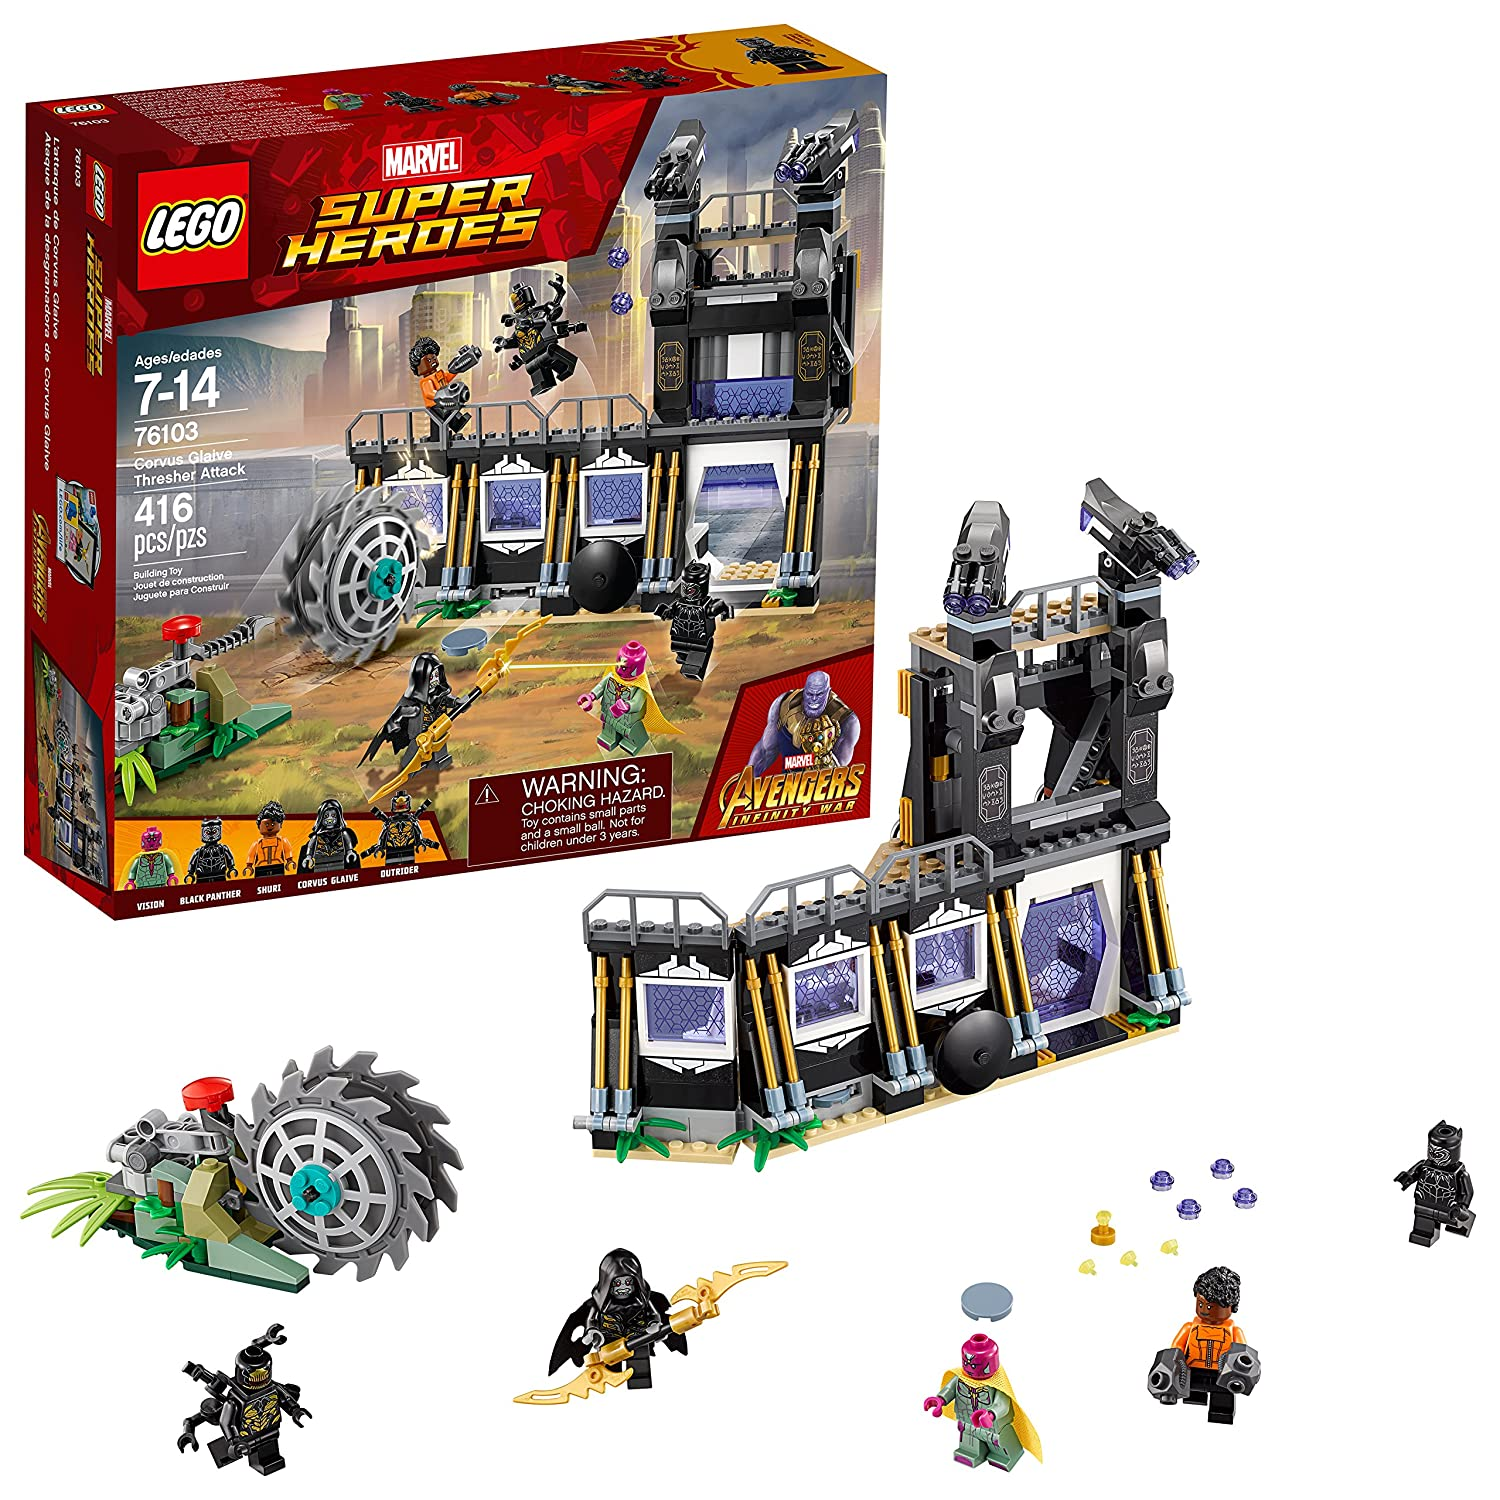 LEGO Marvel Super Heroes Avengers: Infinity War Corvus Glaive Thresher Attack 76103 Building Kit (416 Piece) 6212648